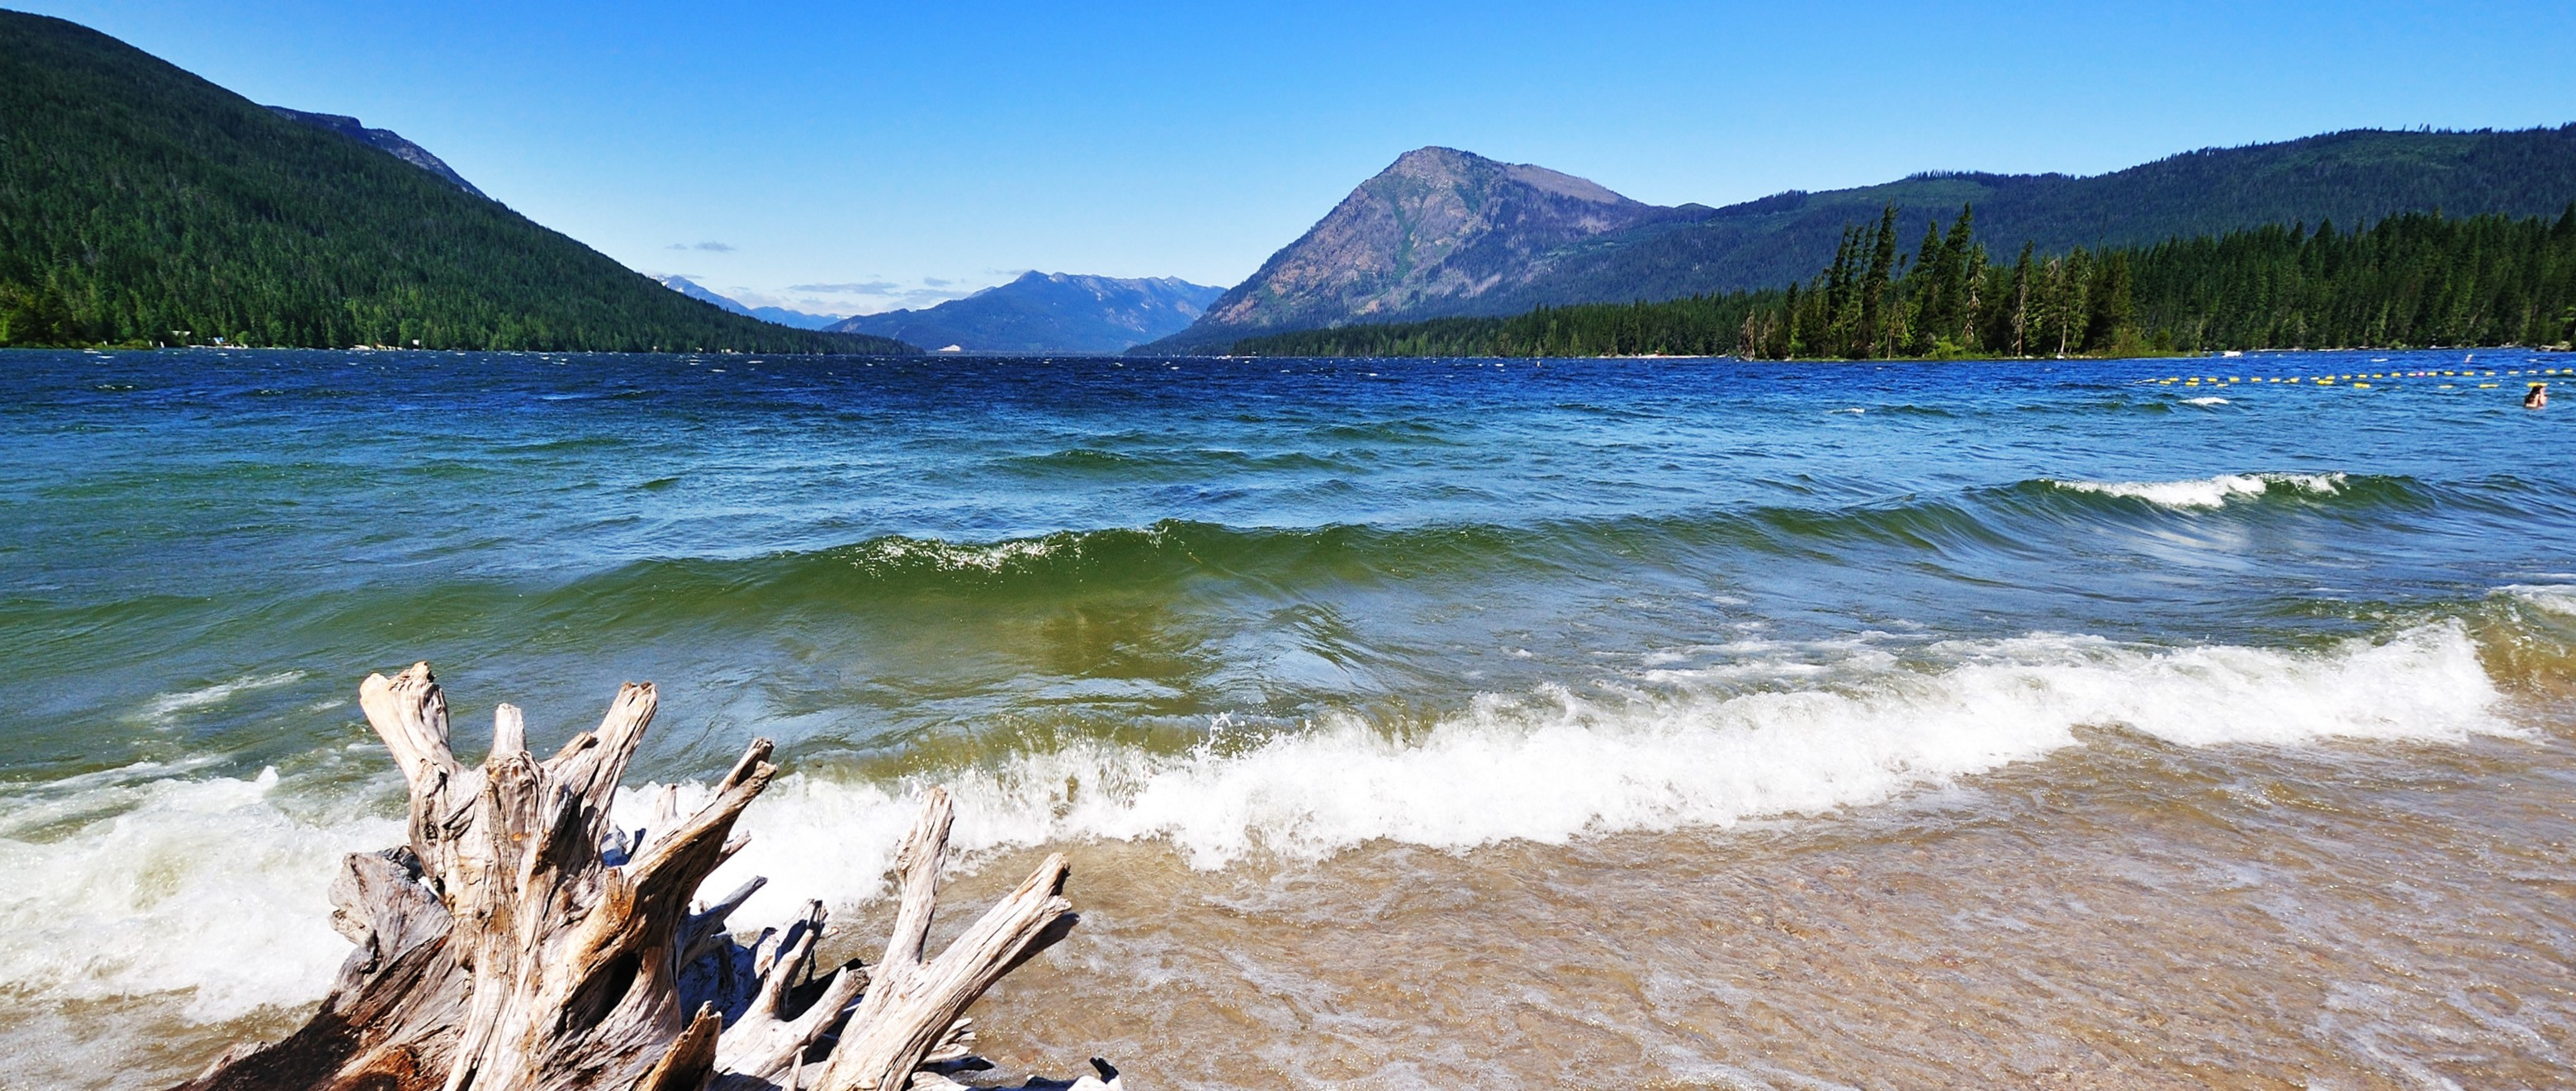 A photo of the shore of Lake Wenatchee